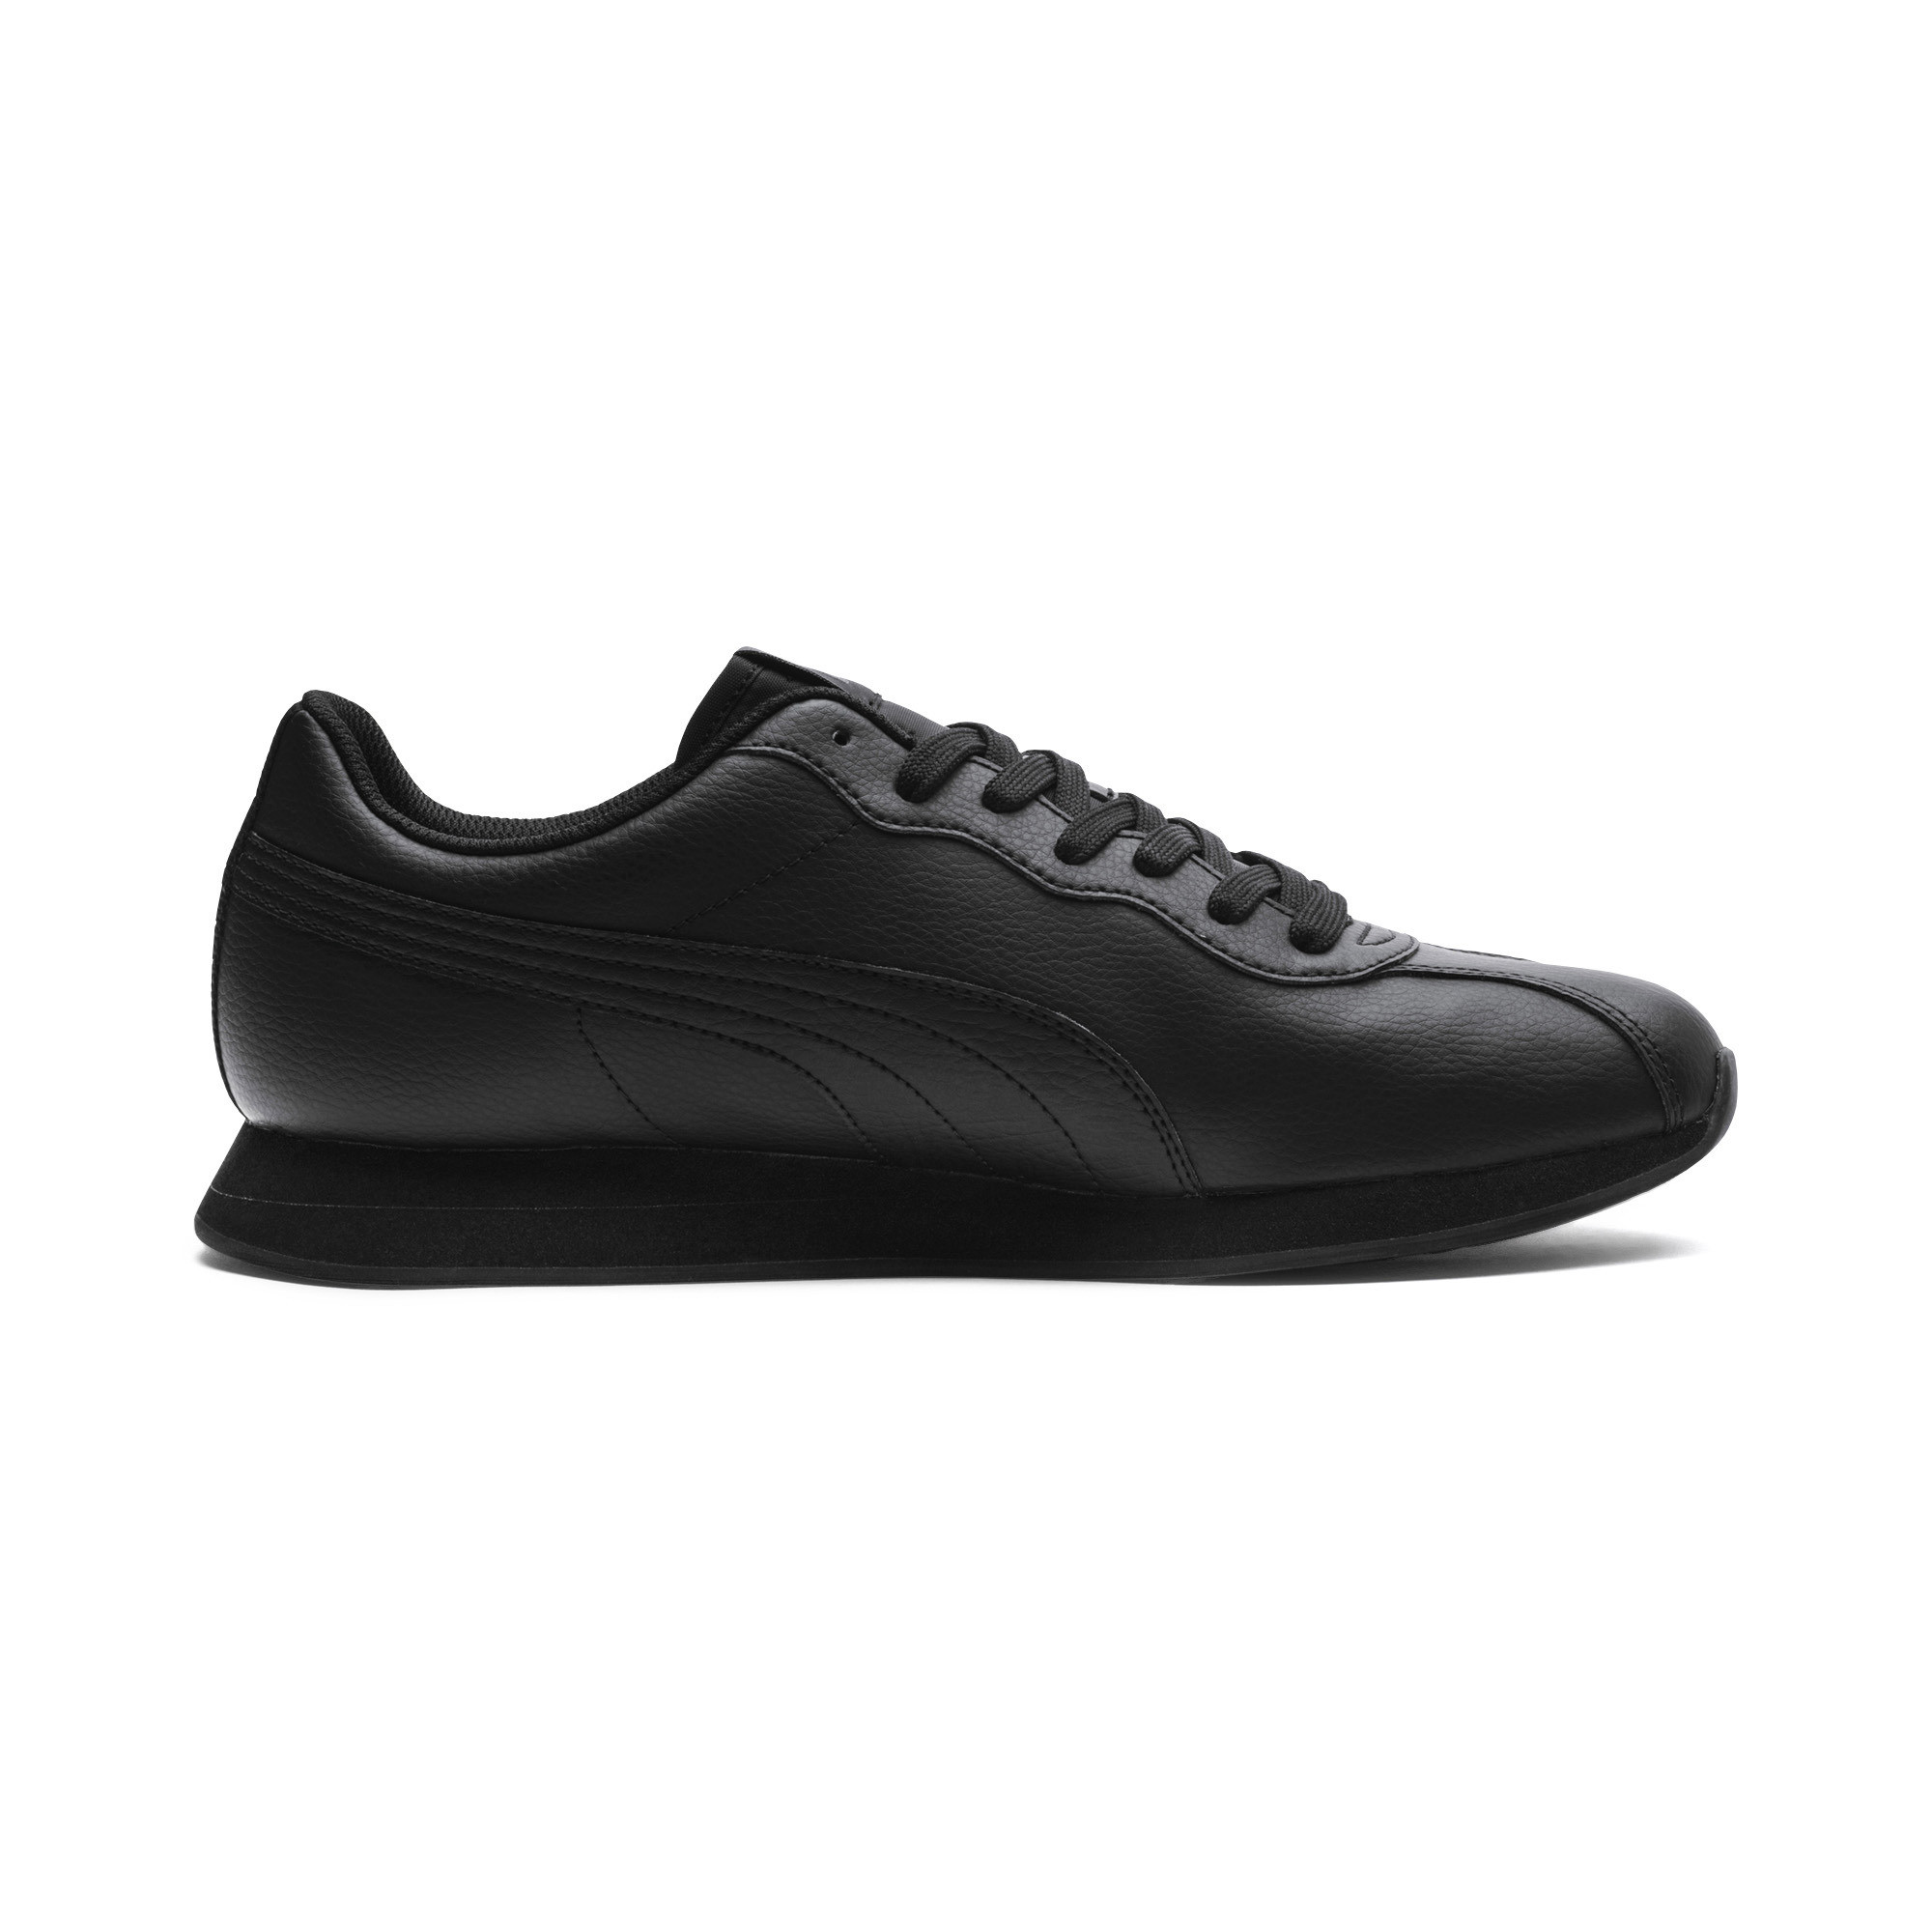 PUMA-Turin-II-Men-039-s-Sneakers-Men-Shoe-Basics thumbnail 6